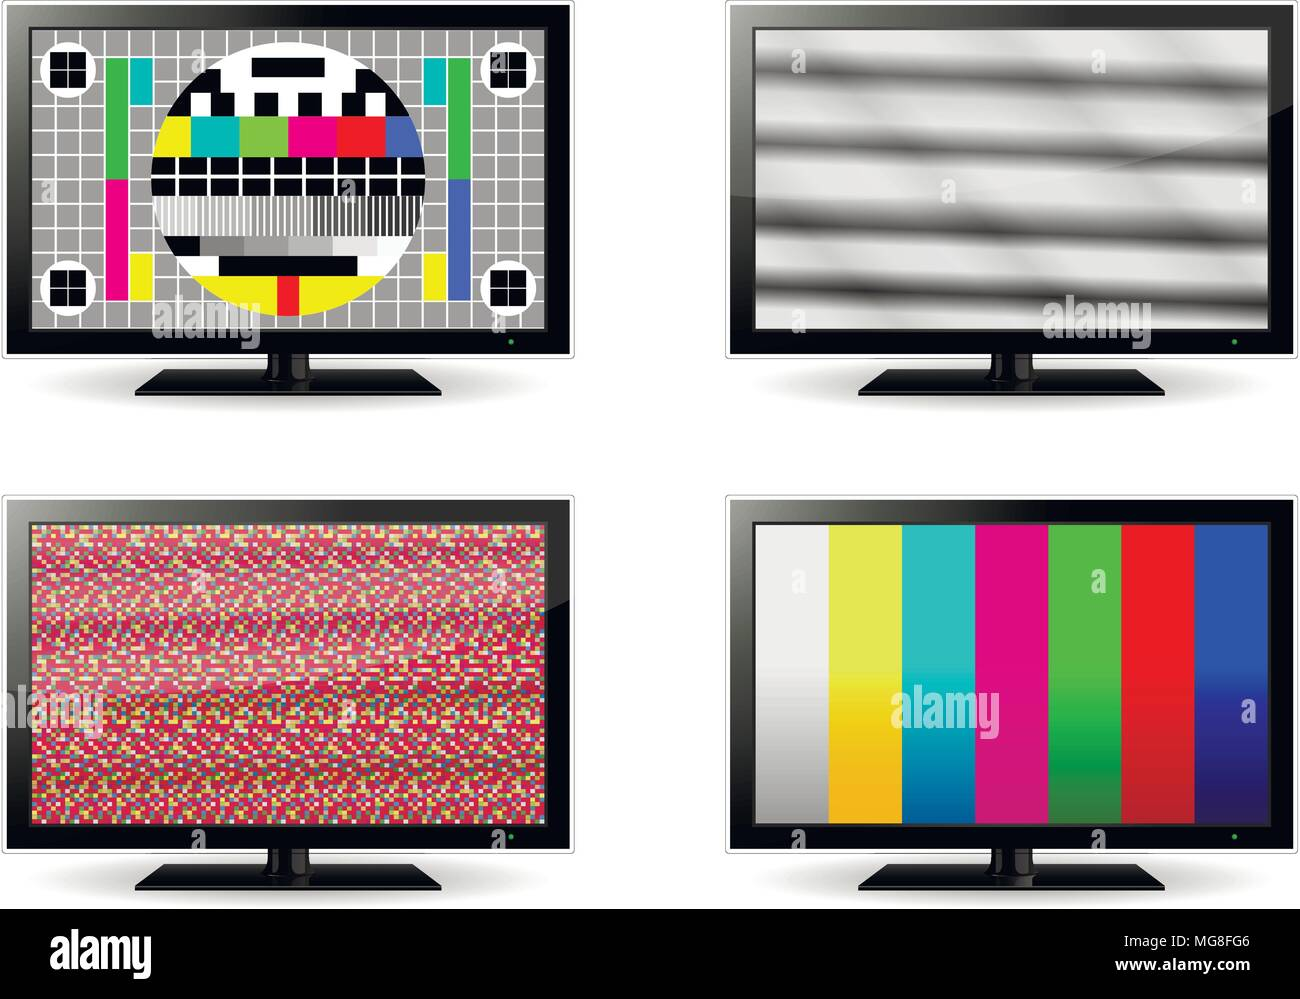 TV test and no signal screens. Vector illustration. - Stock Image